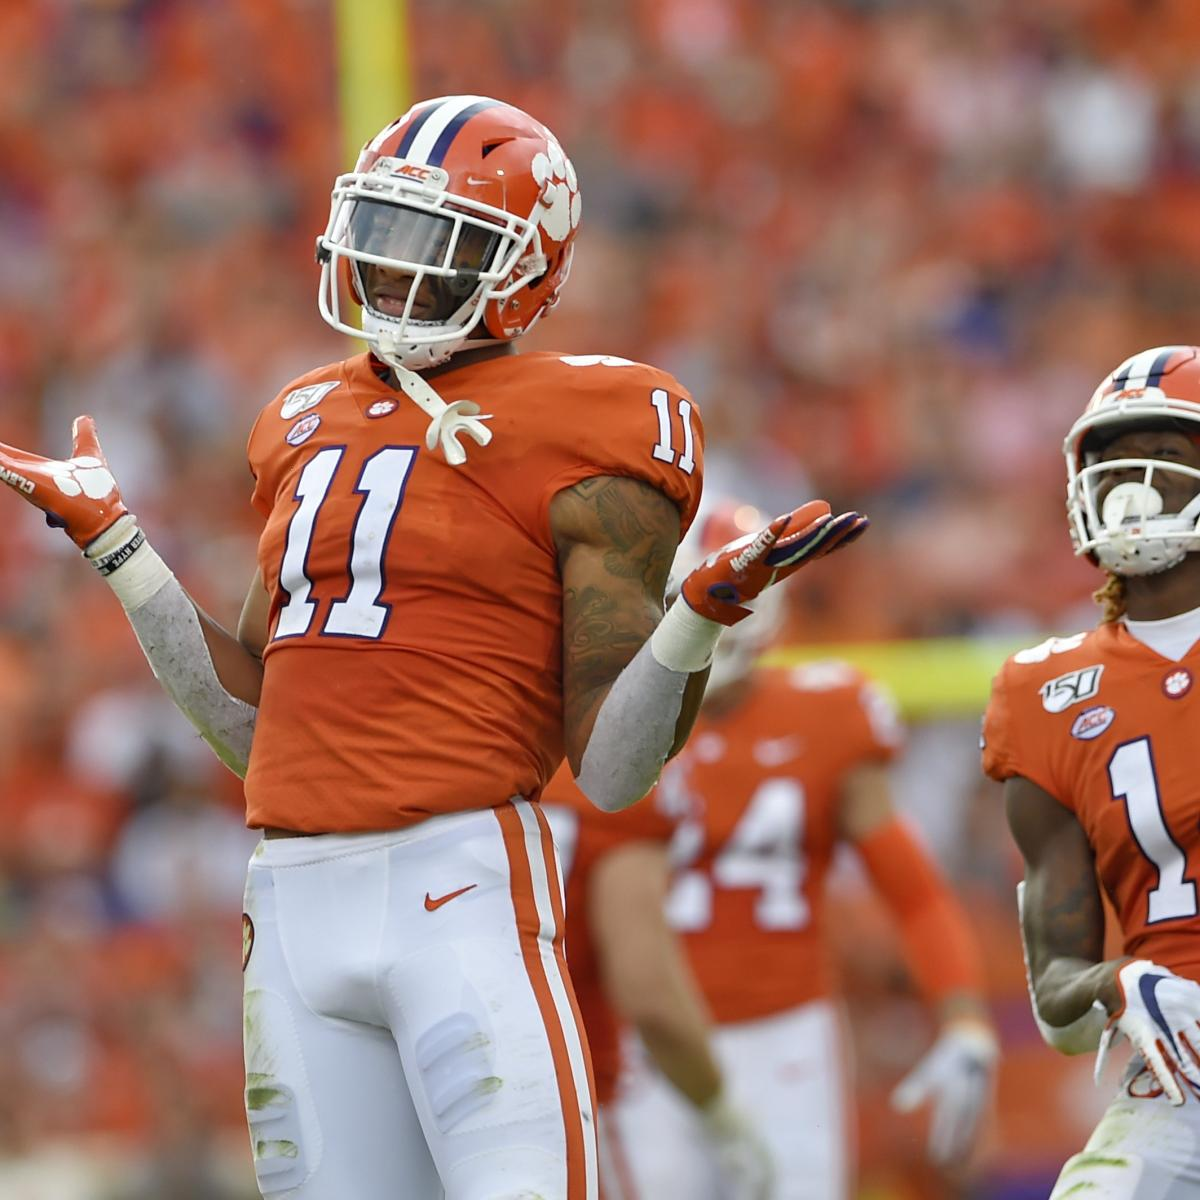 NFL Draft 2020: Latest Expert Mocks, Projections for Tough 1st-Round Decisions